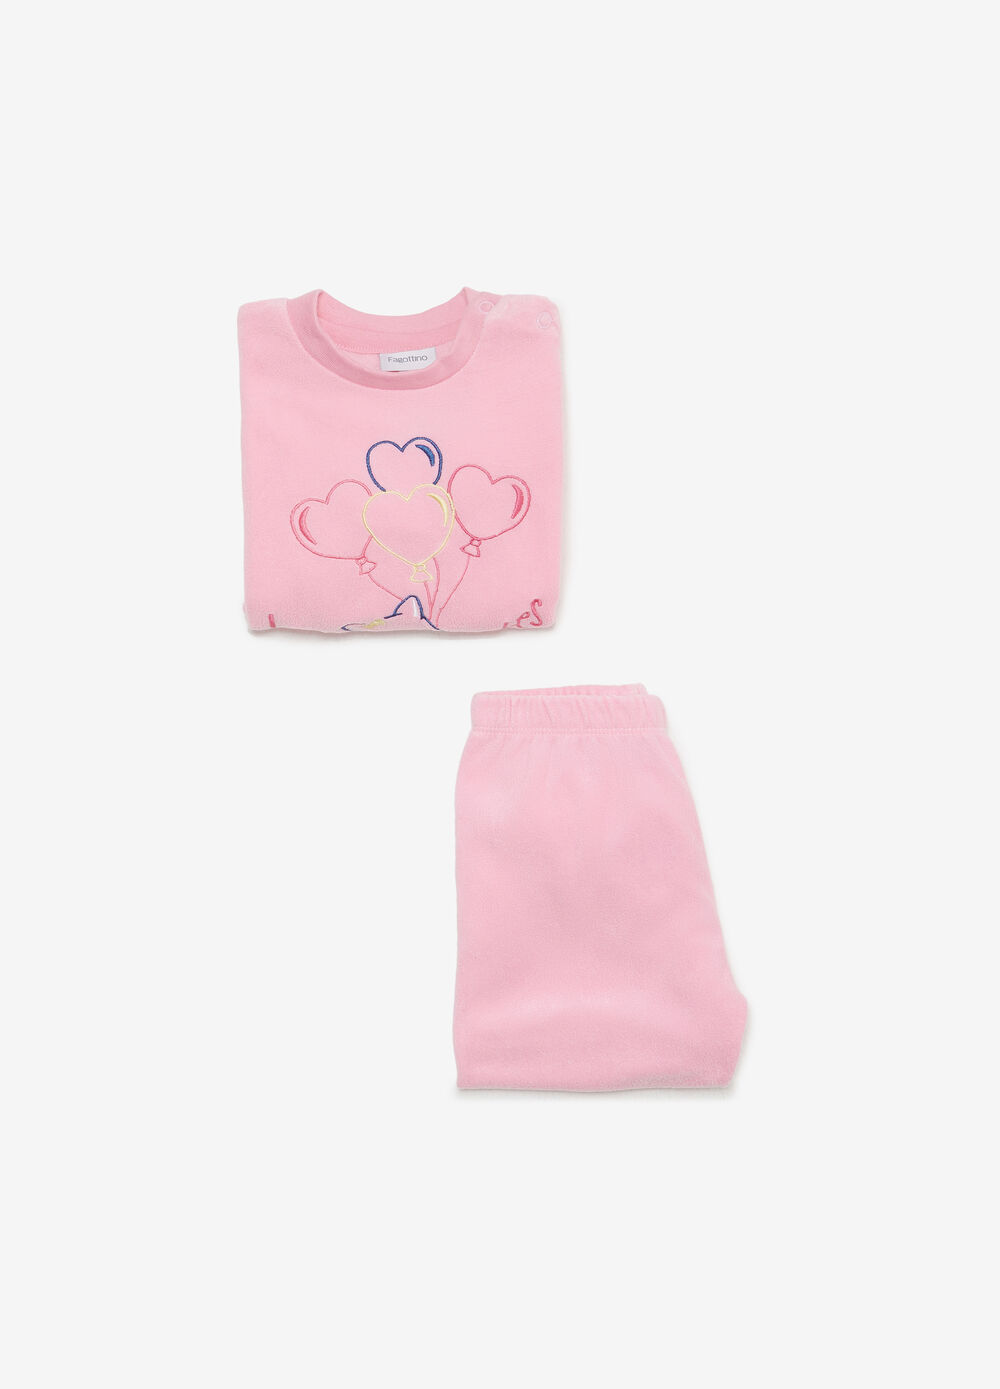 Solid colour pyjamas with hearts and fox embroidery